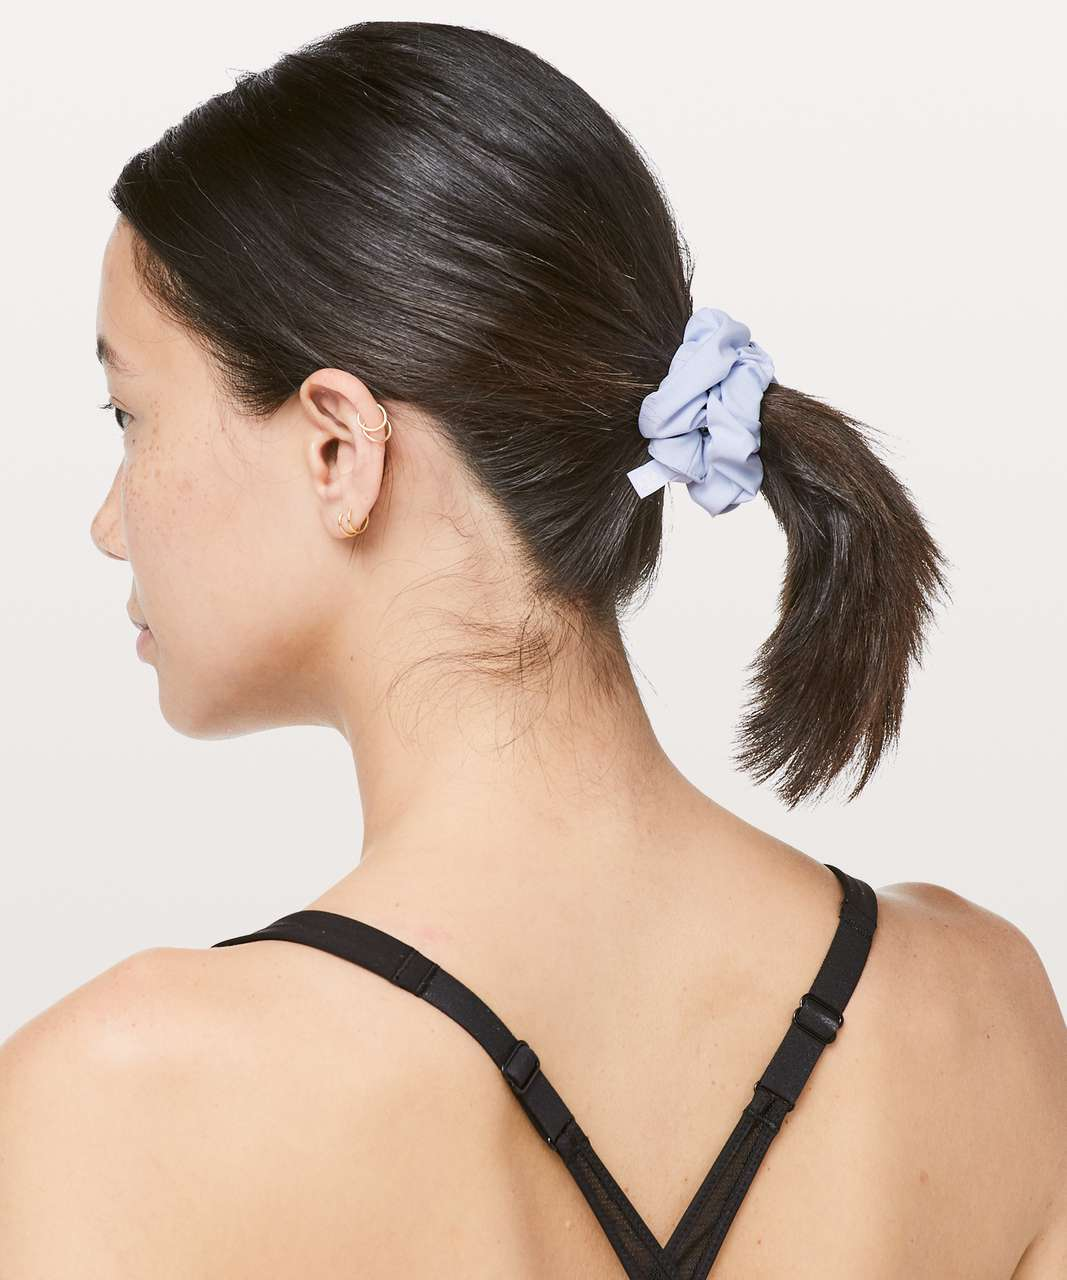 Lululemon Uplifting Scrunchie - Serene Blue (First Release)